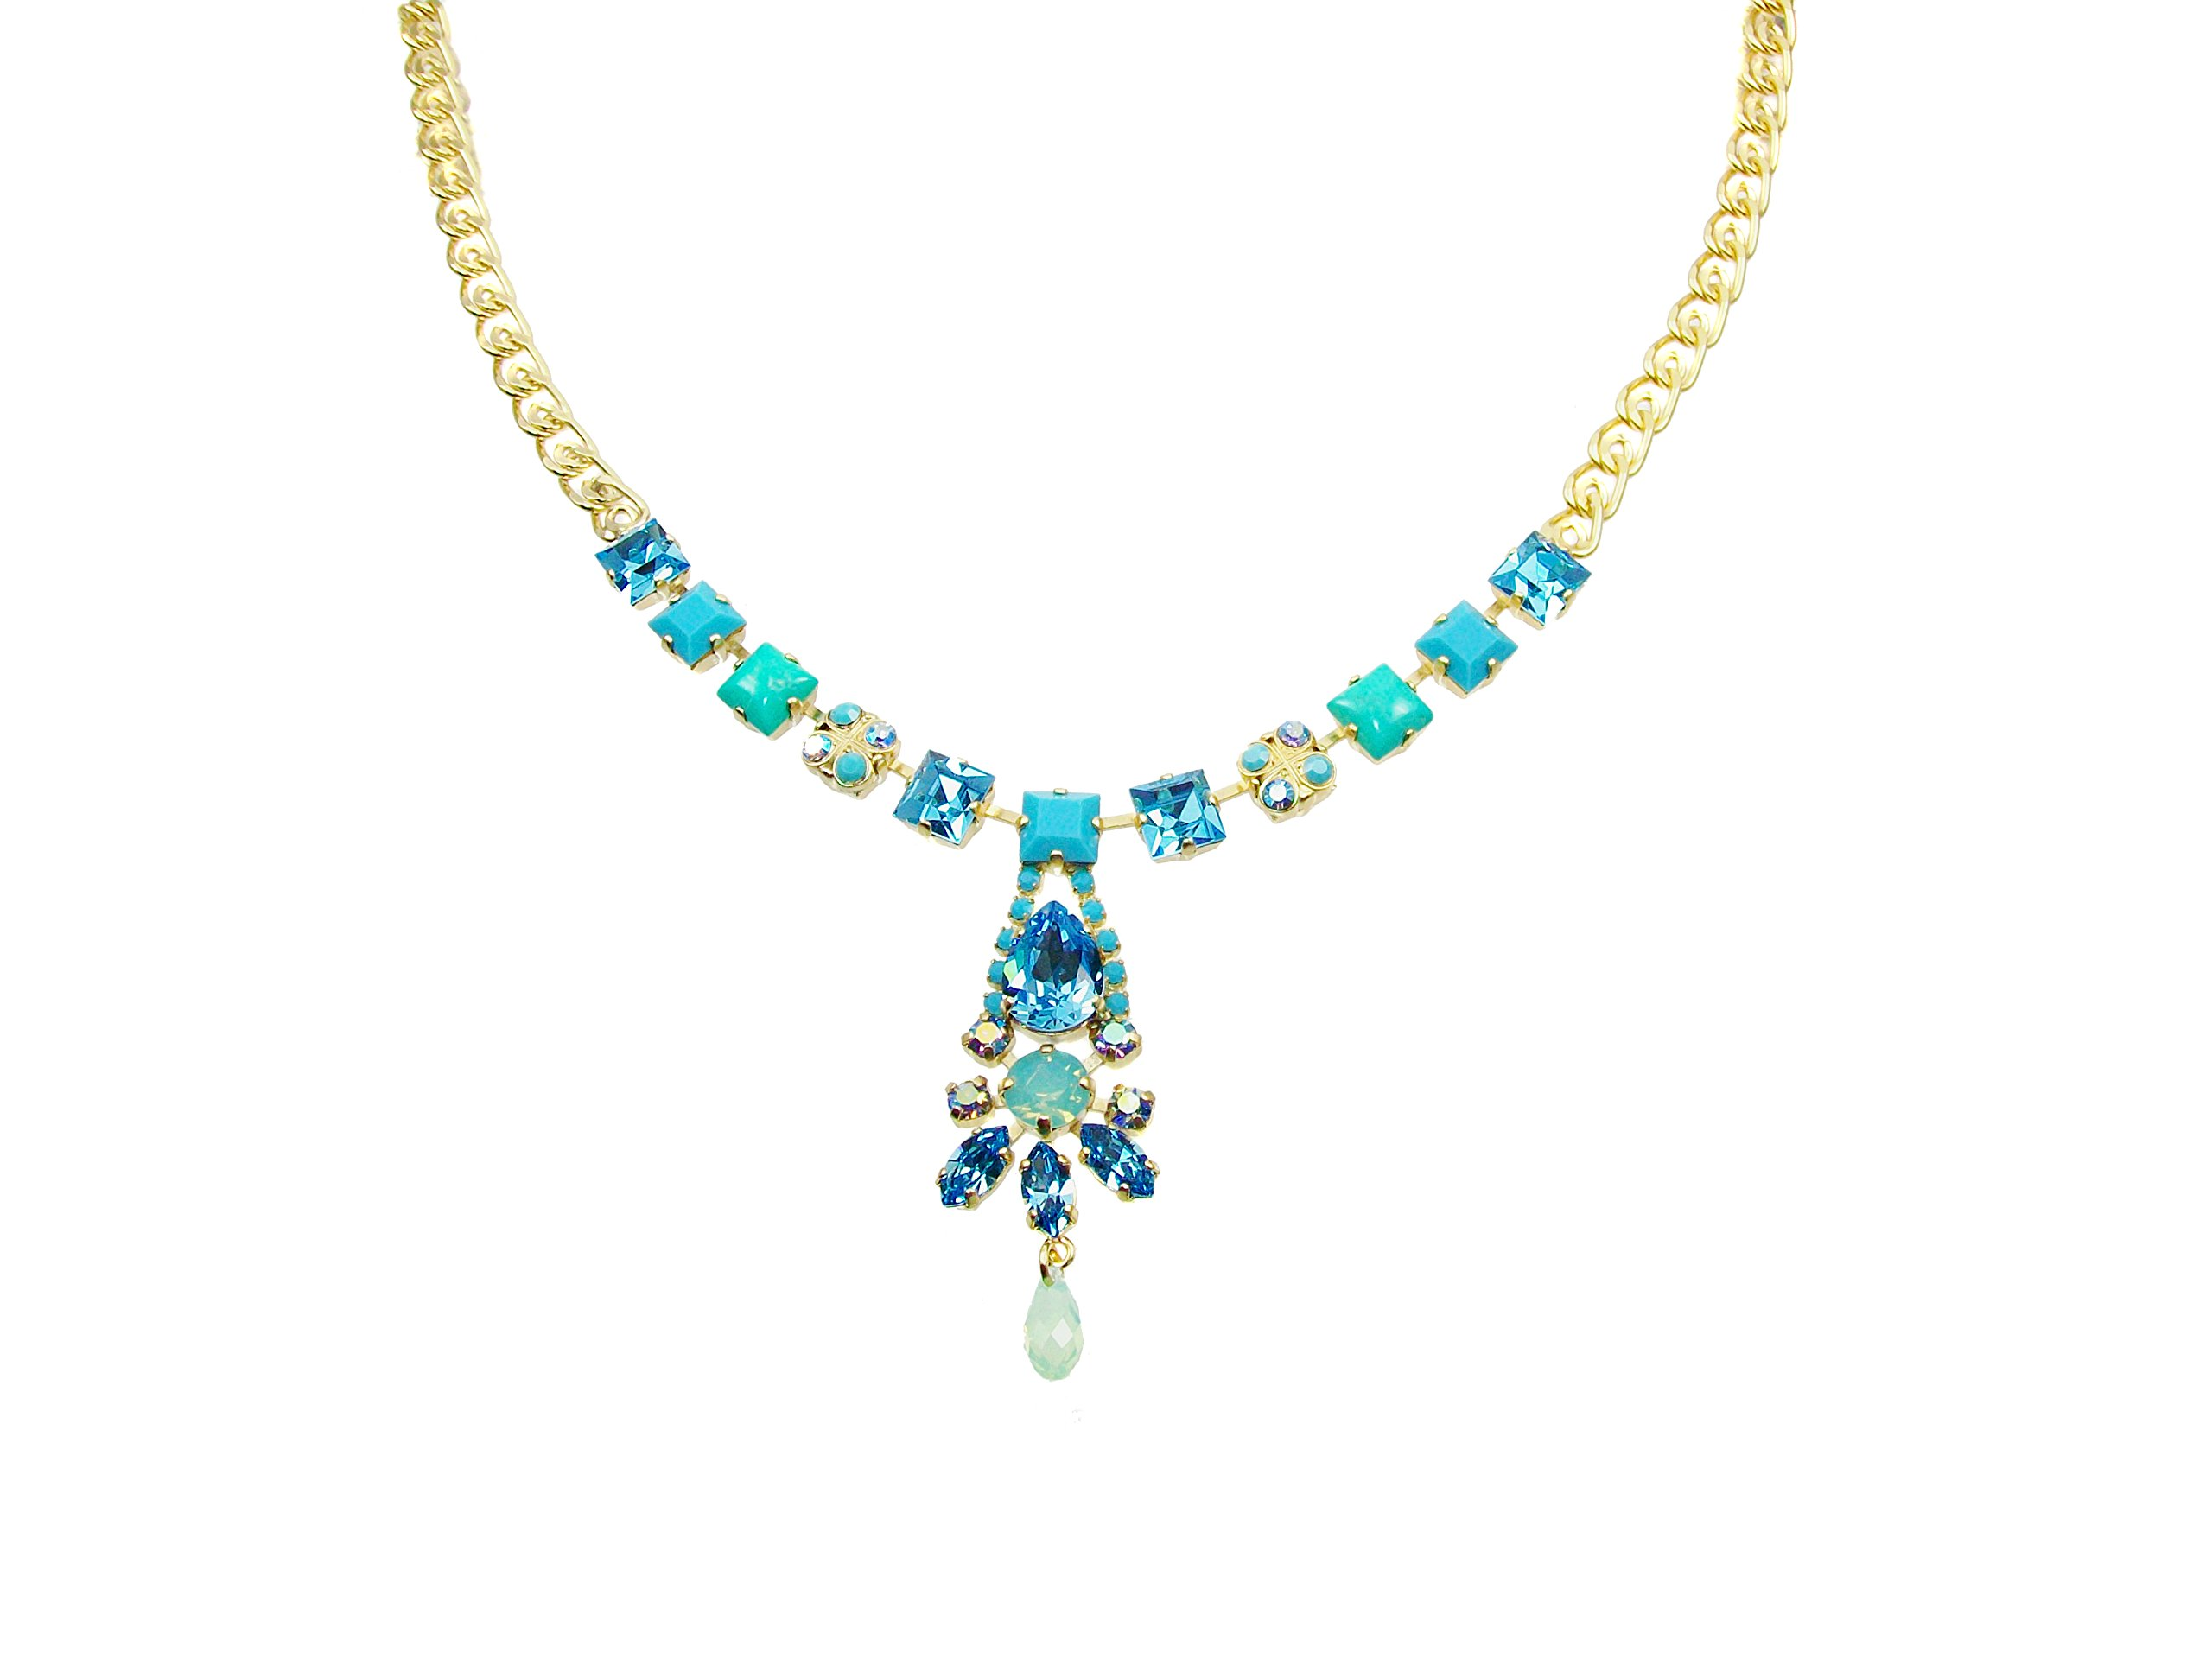 Mariana ''Cindy'' Antique Gold Plated Y Style Necklace with Swarovski Crystals, 18'' by Mariana